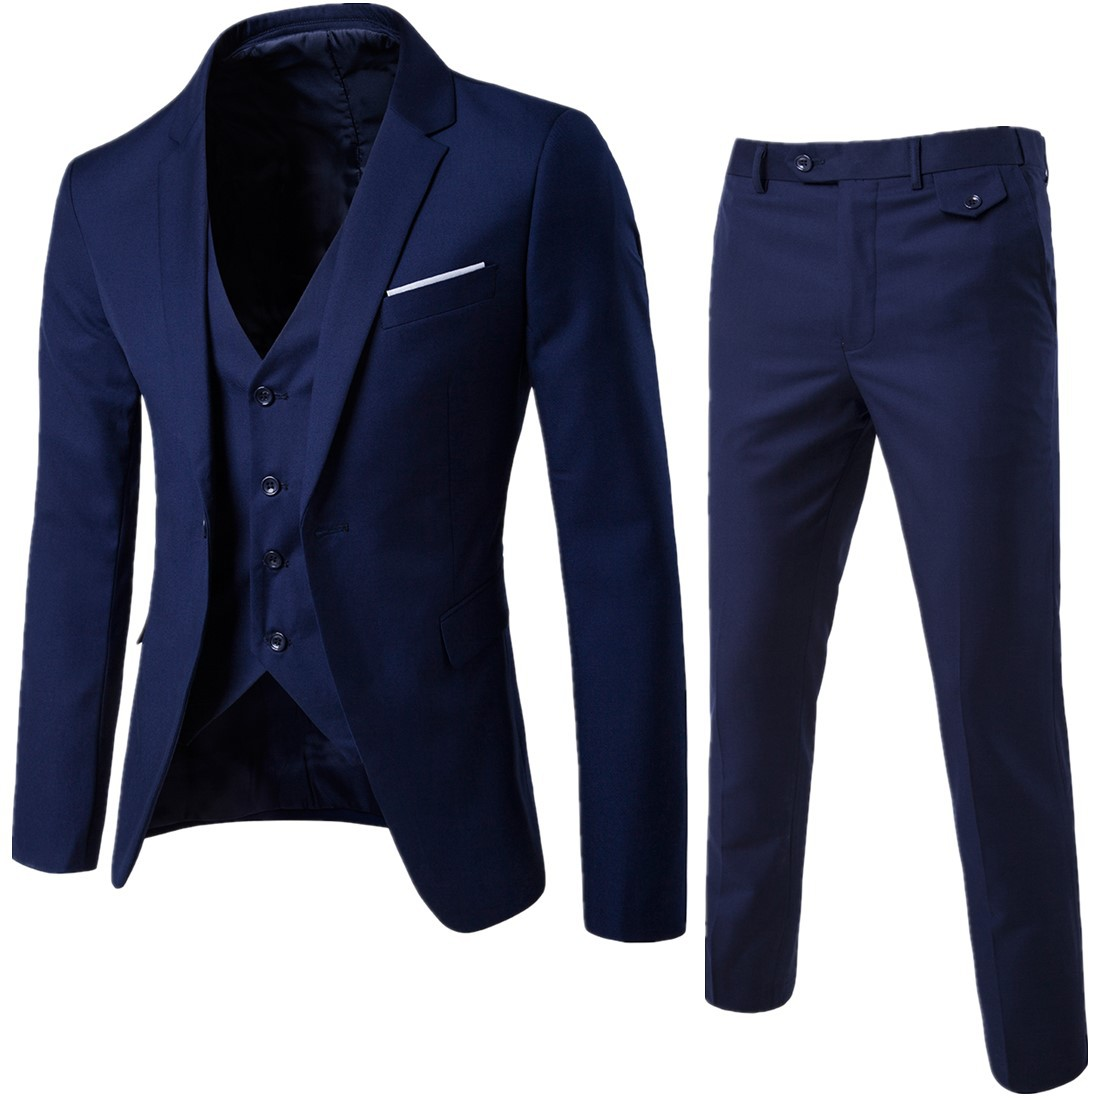 2018 Autumn Men Formal Wear Business Leisure Suit Three-piece Set Store Owner-Style Japanese-style Trend Suit